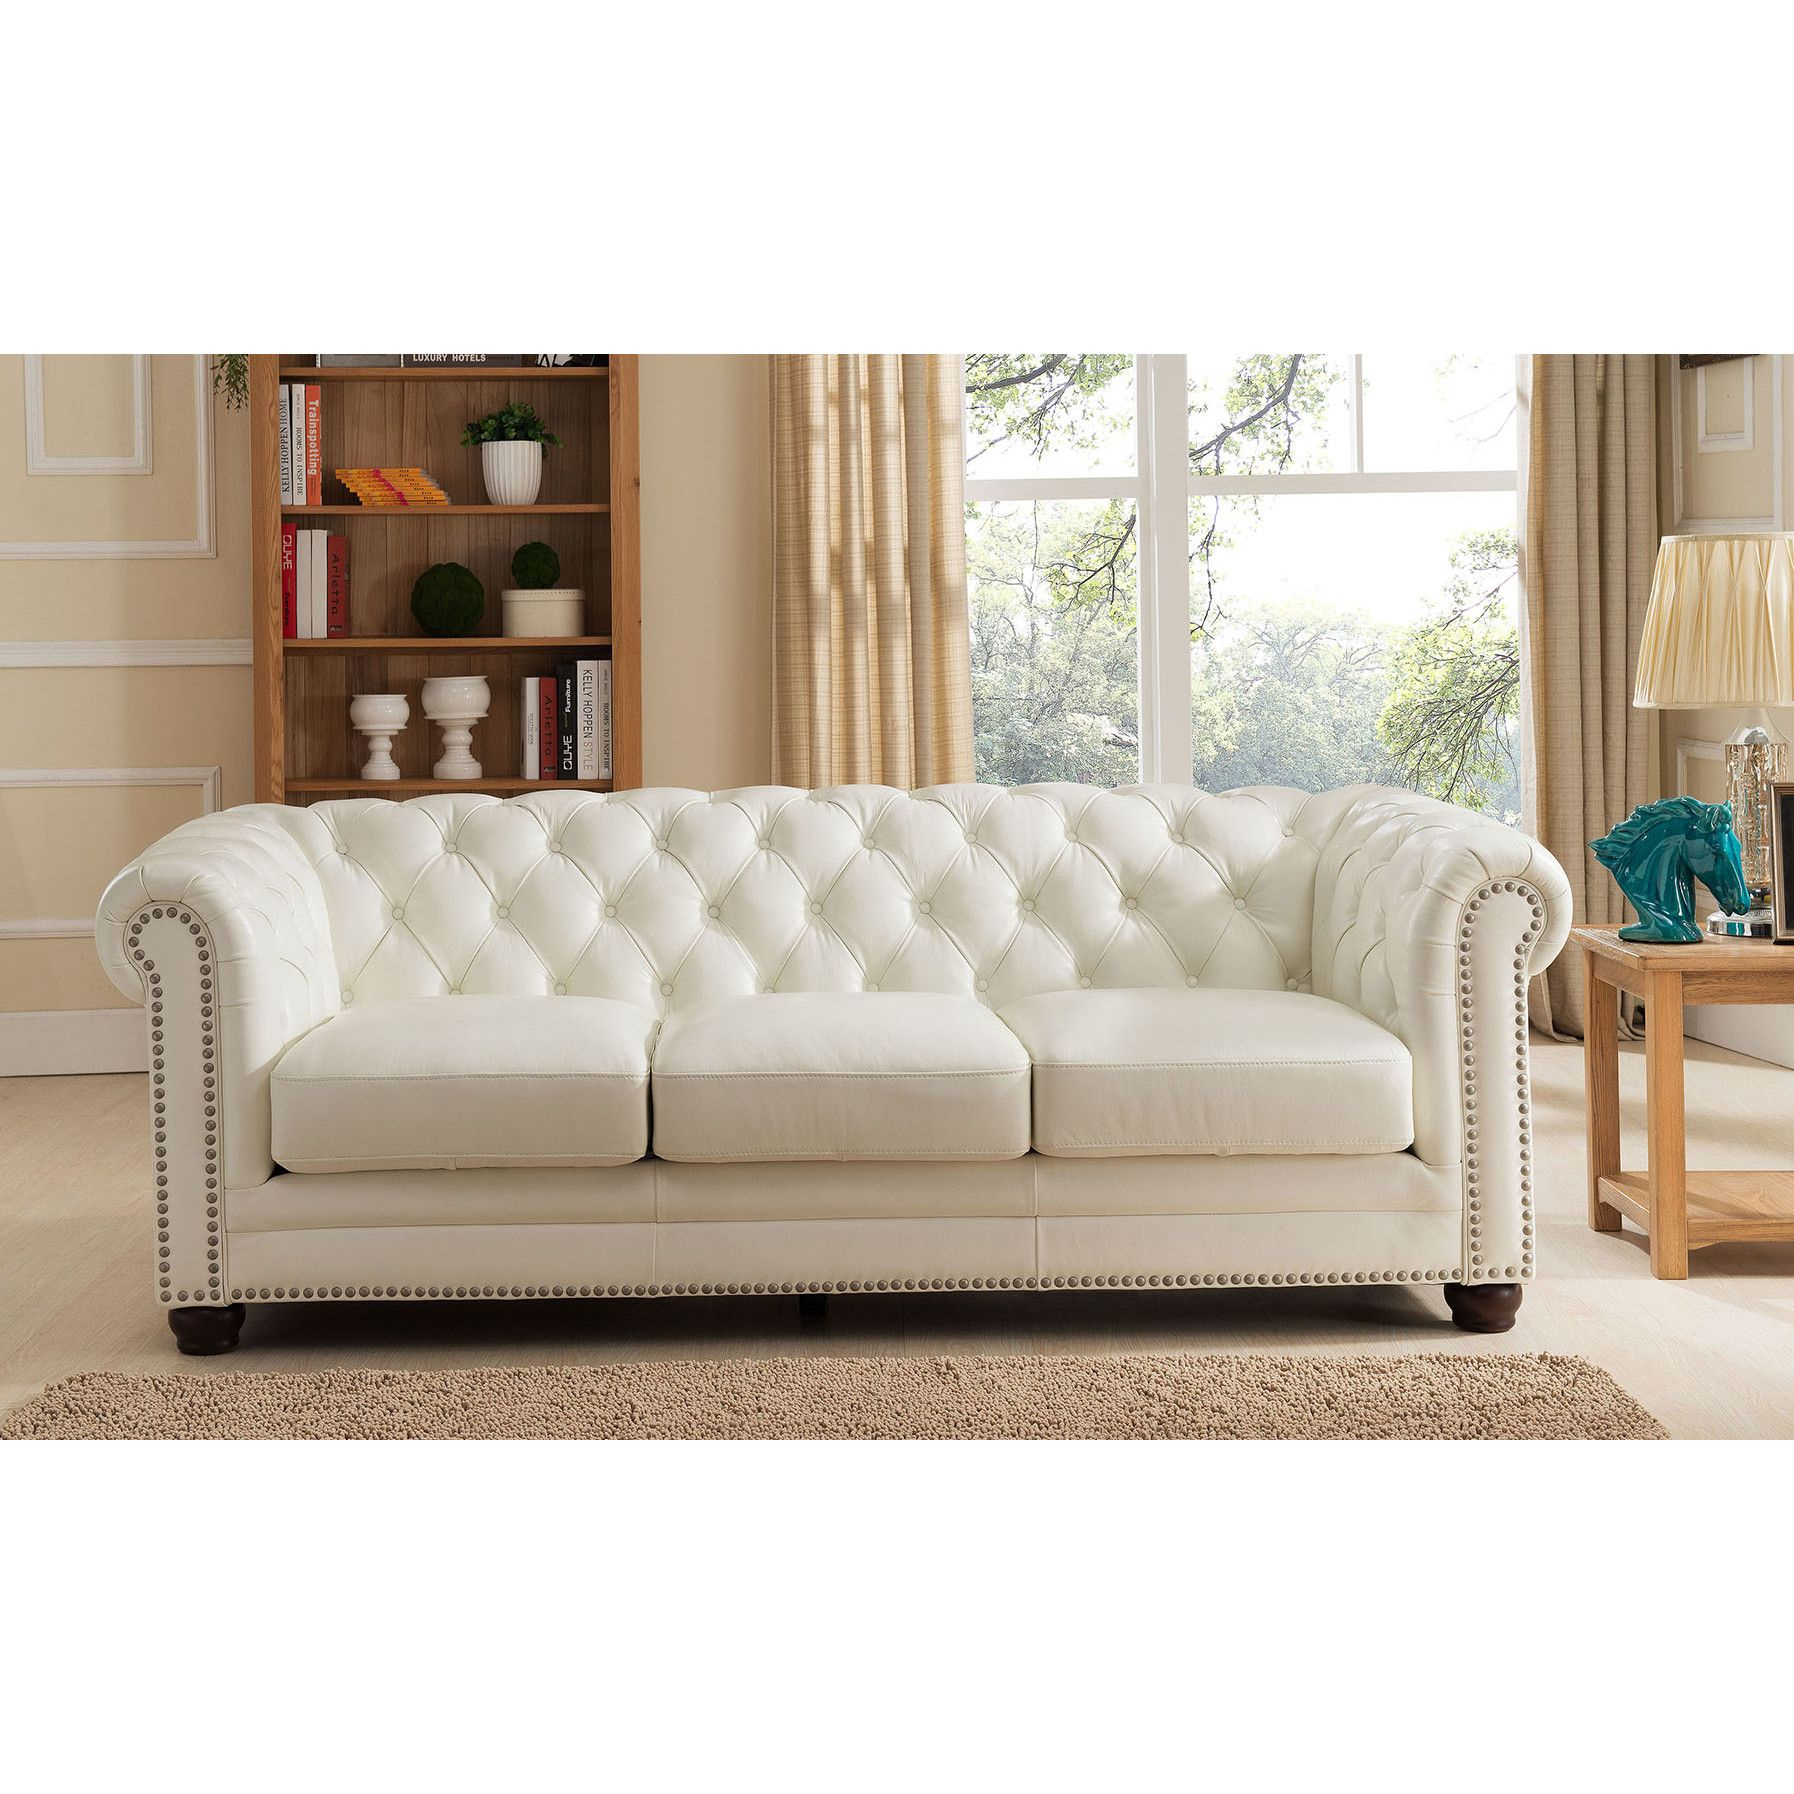 Delicieux Amax Nashville Leather Sofa